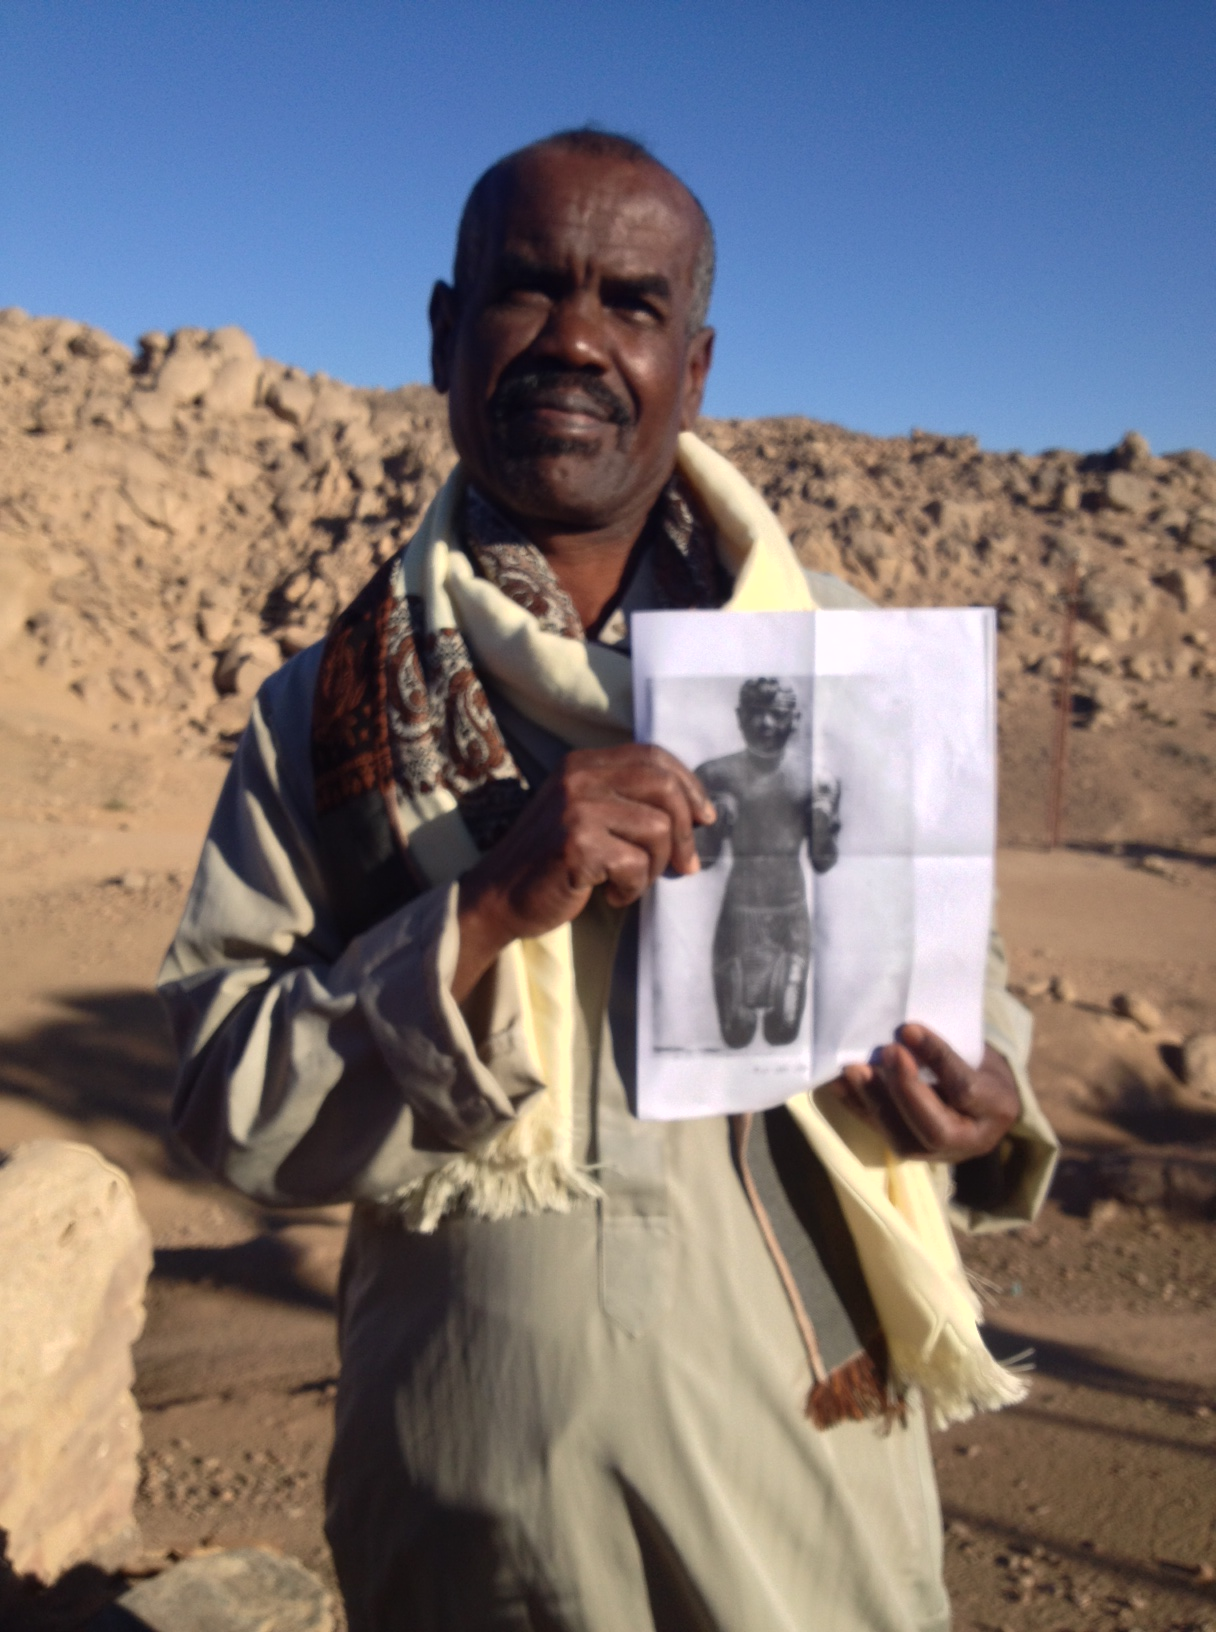 Fekra Aswan, Songs on the Nubian minibus | thebabaproject